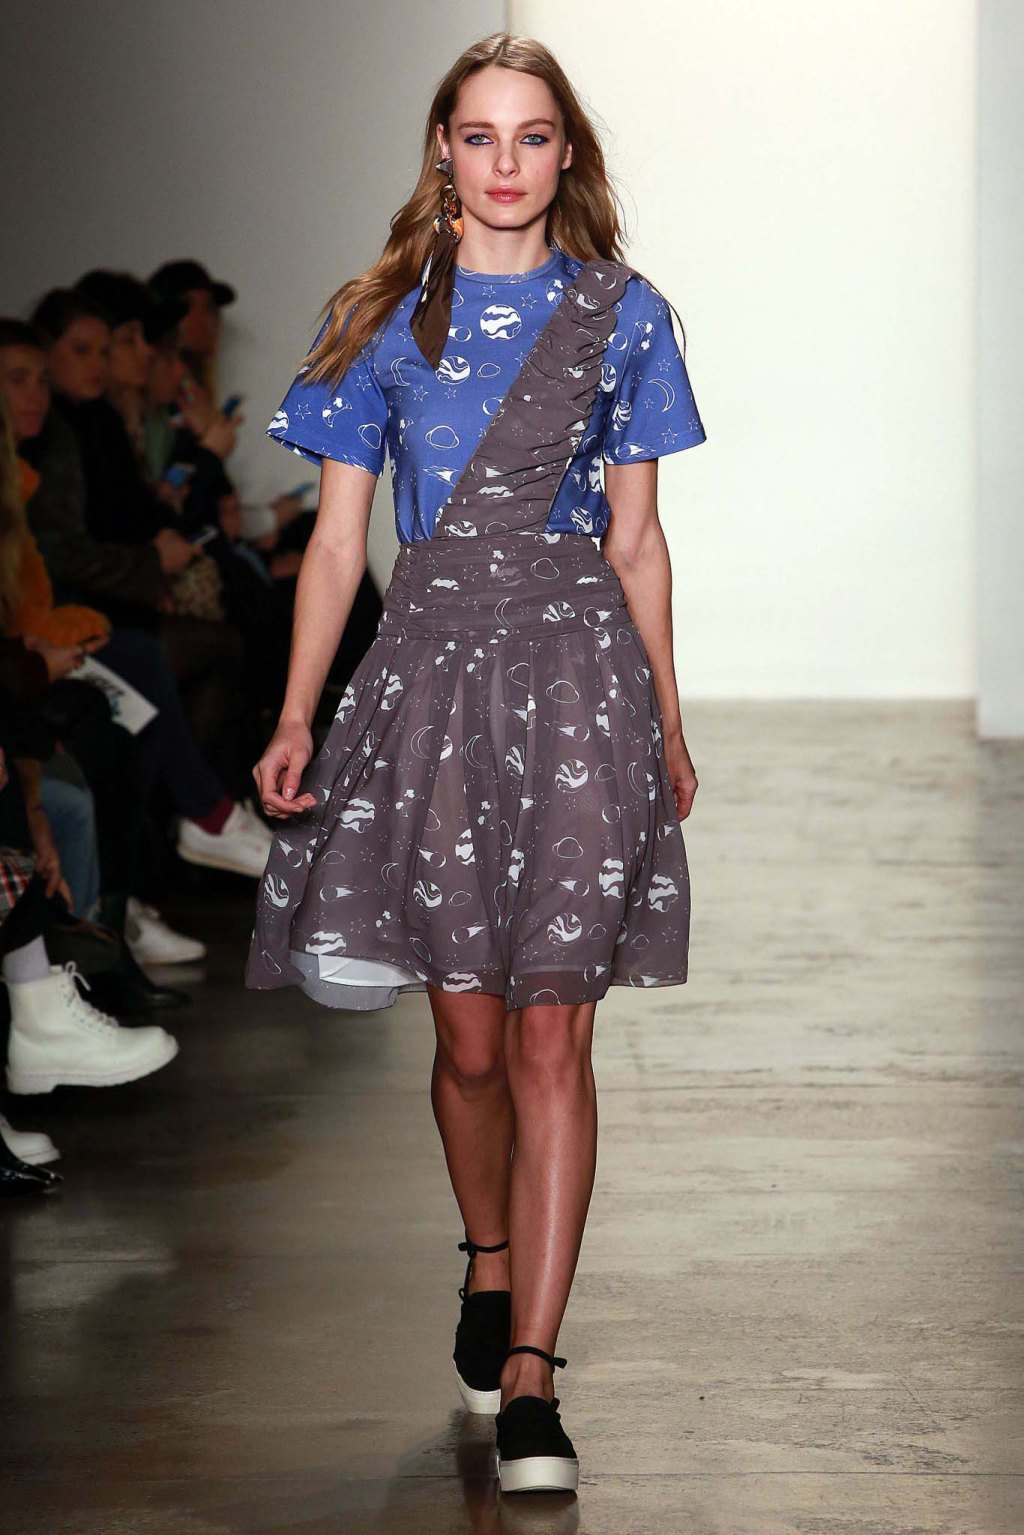 NYFW Anna K Fashion Show Fall Winter 2016 Louboutins & Love Fashion Blog Esther Santer NYC Street Style Models Collection Hair Makeup Dress Trendy Pretty Pattern Print Spaceship Fun Sneakers Red Blue Yellow Colorful Skirt Shoes Plaid Scarf Coat Outfit.jpg